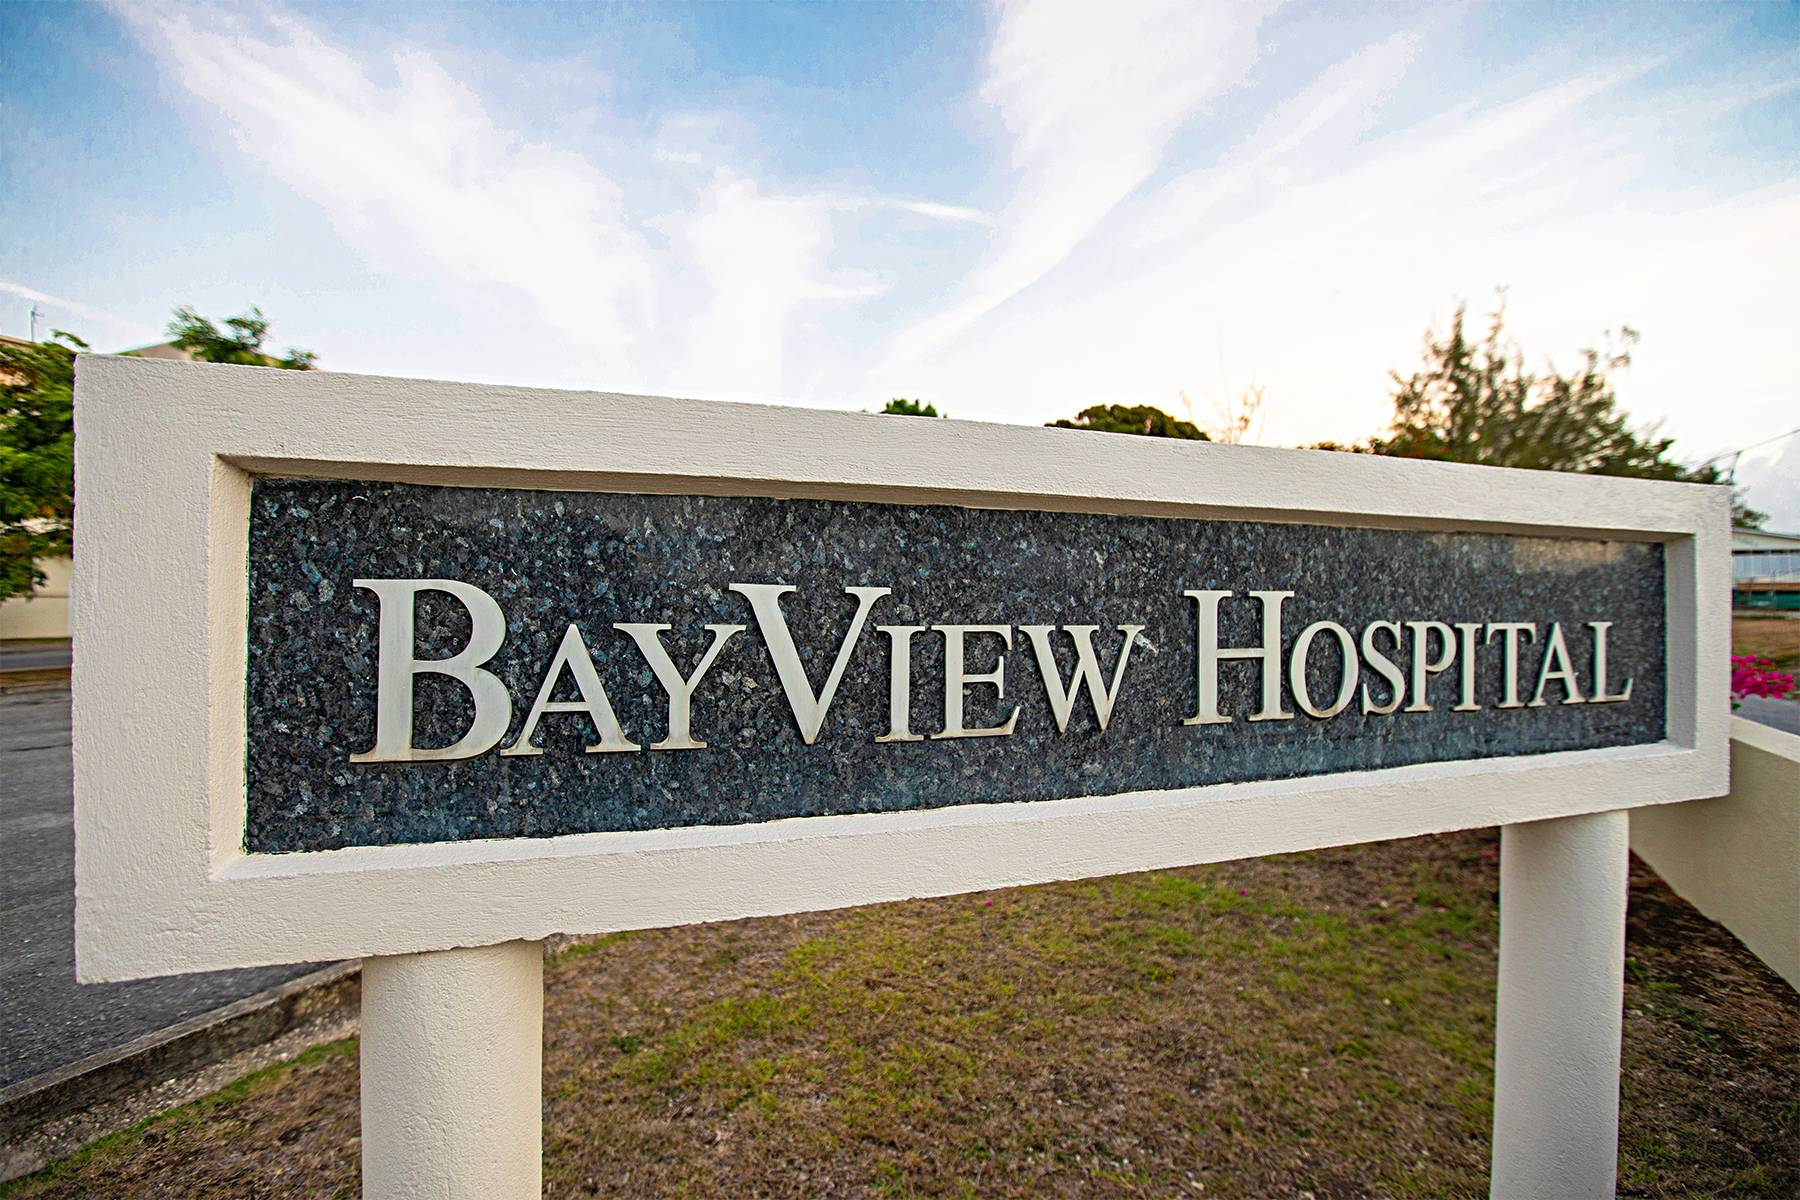 Bayview Hospital Building